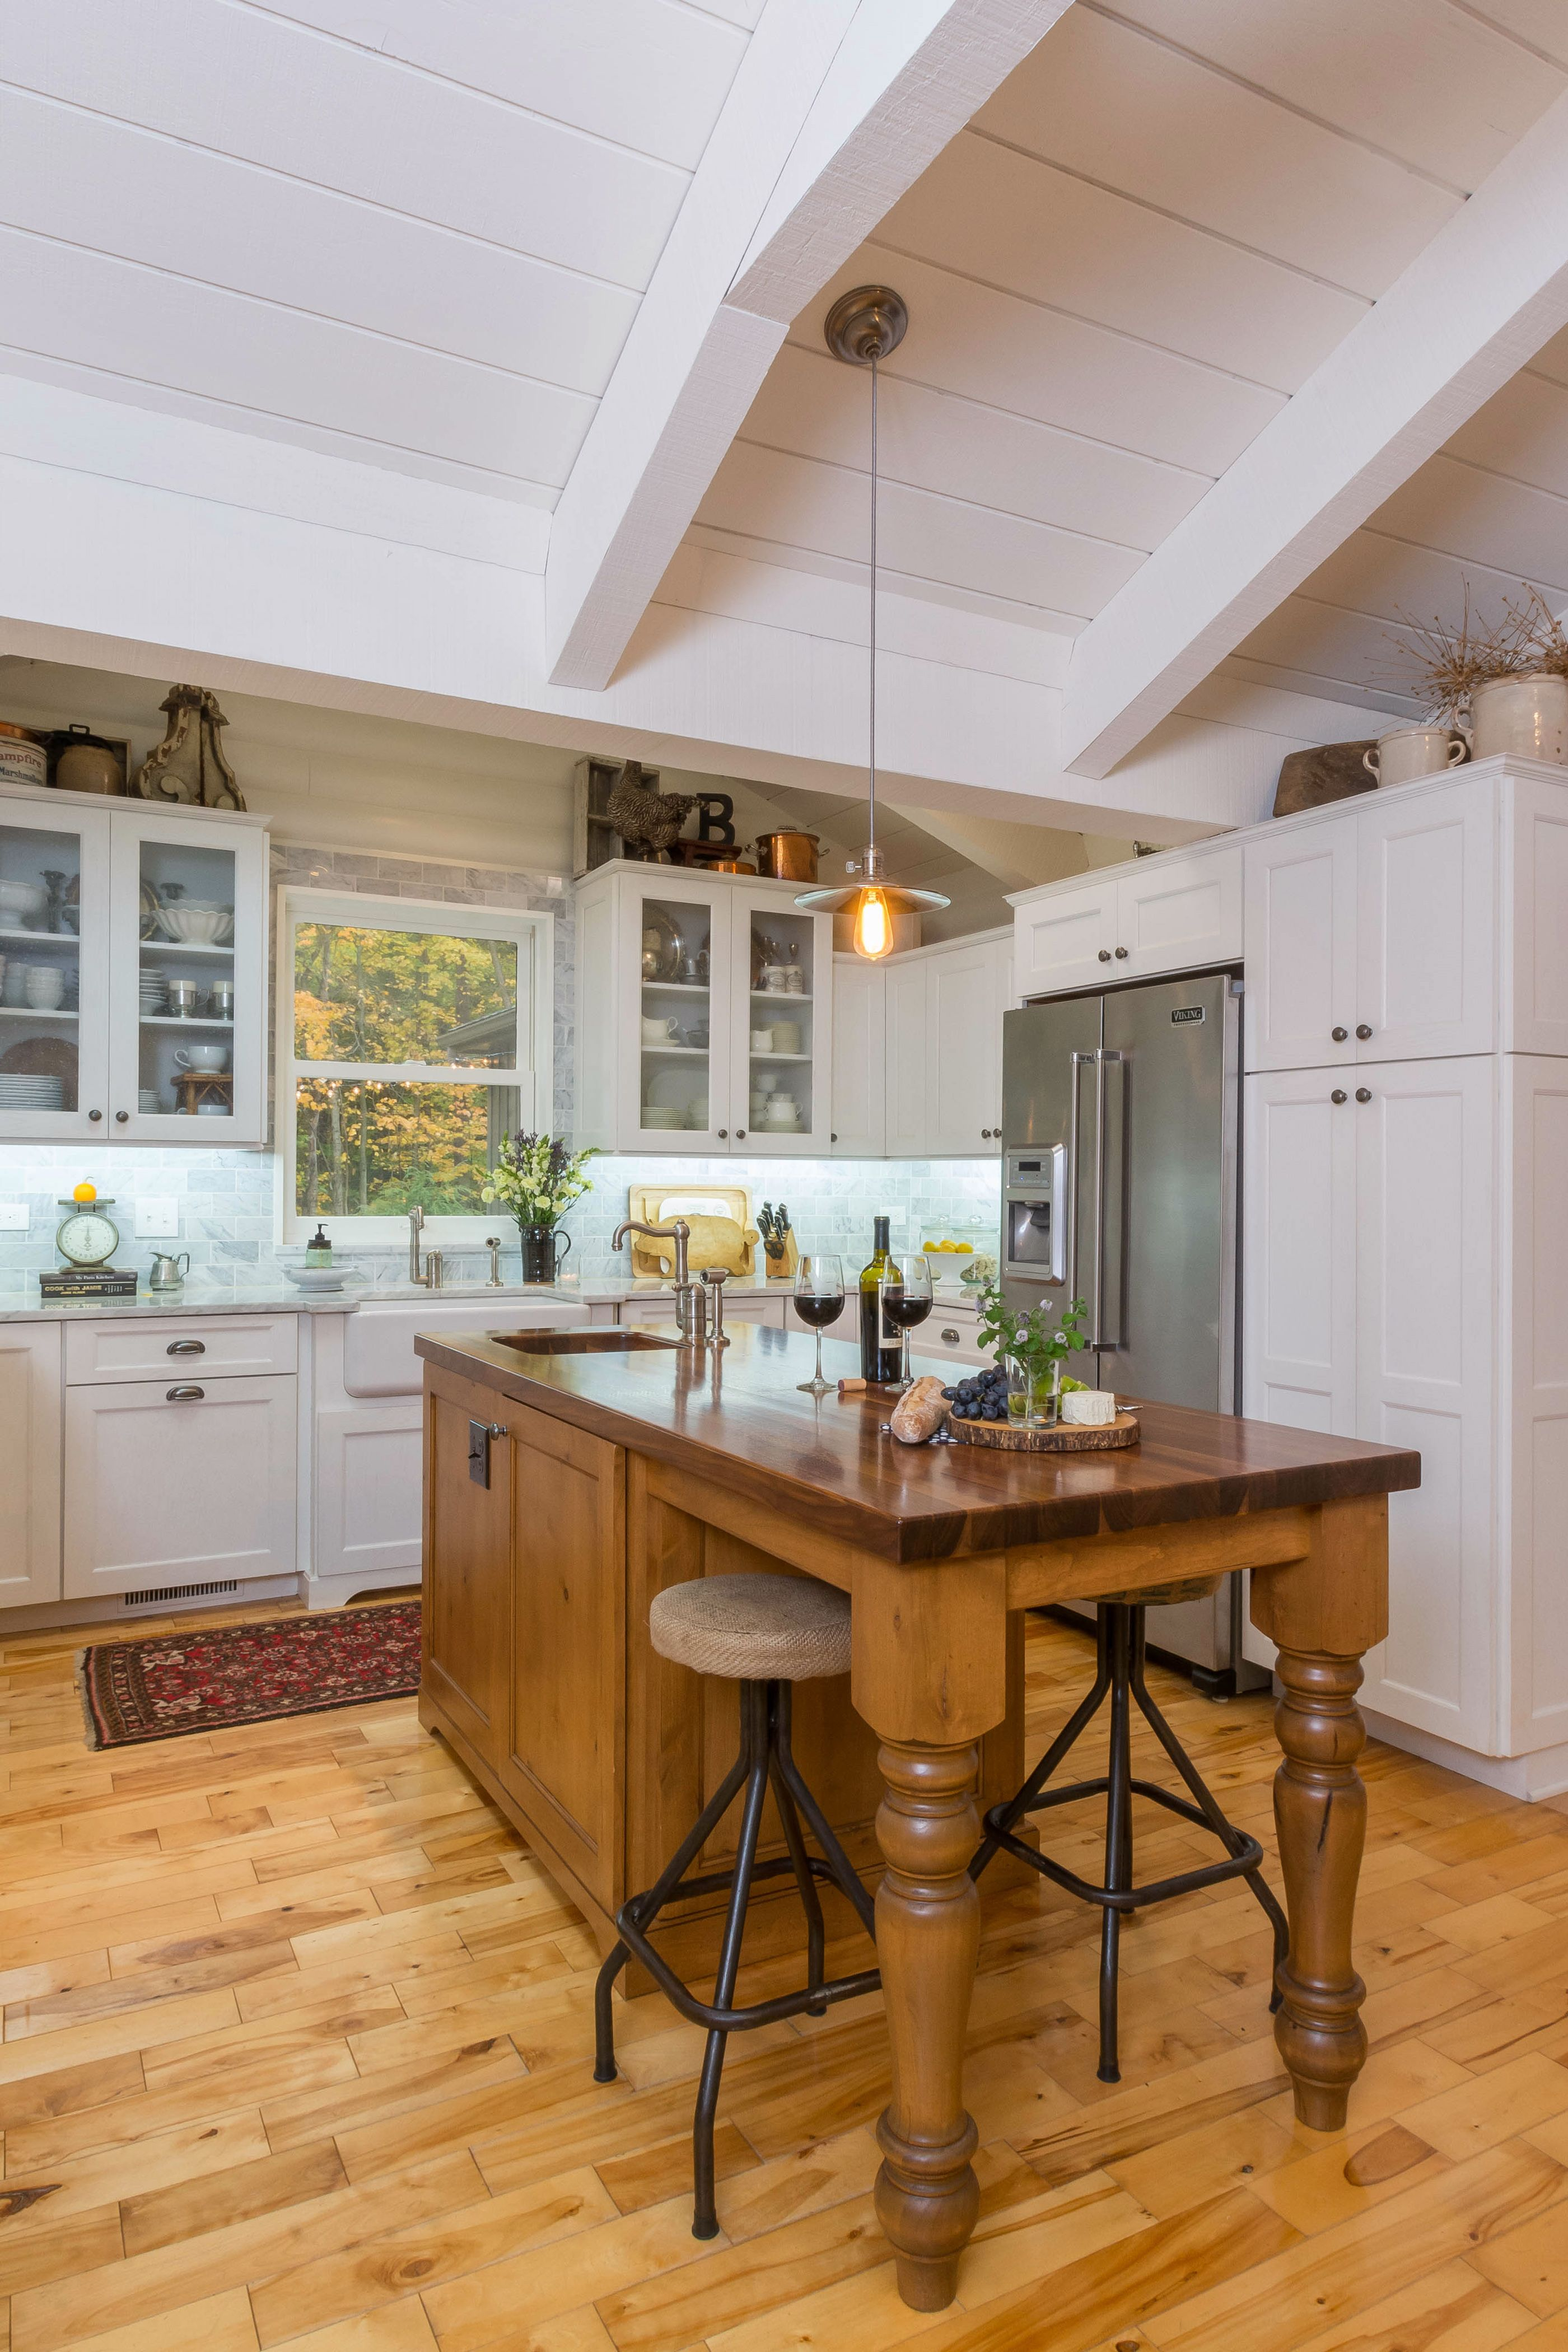 kitchen remodel by j s brown co photography by todd yarrington traditional kitchen on j kitchen id=82298